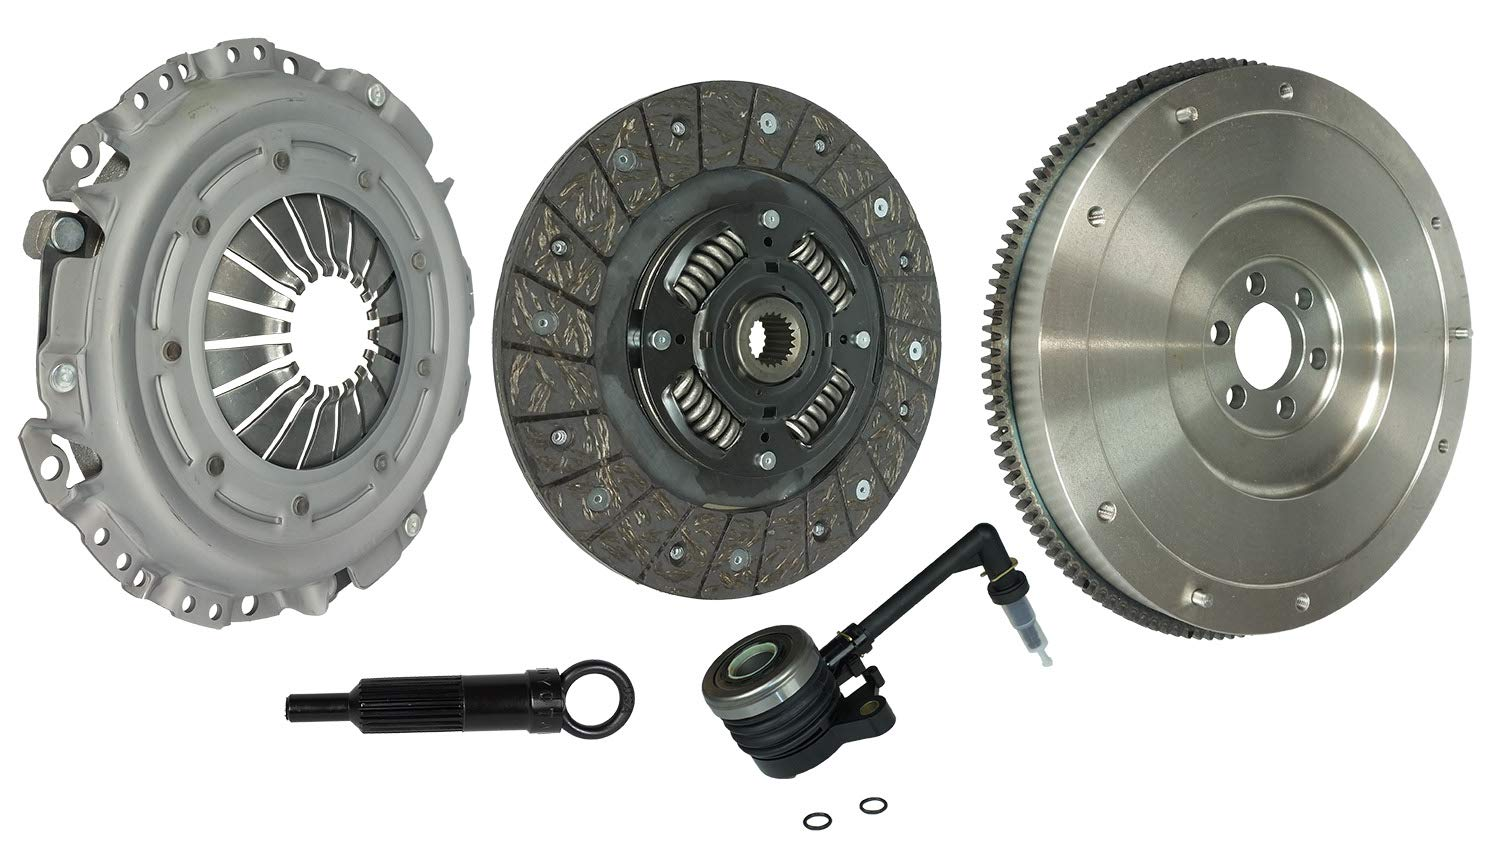 Clutch Kit Works With Nissan Sentra Altima Base S Sle Se-R Spec V Sl Sedan 4-Door Coupe 2-Door 2007-2012 2.5L l4 GAS DOHC Naturally Aspirated